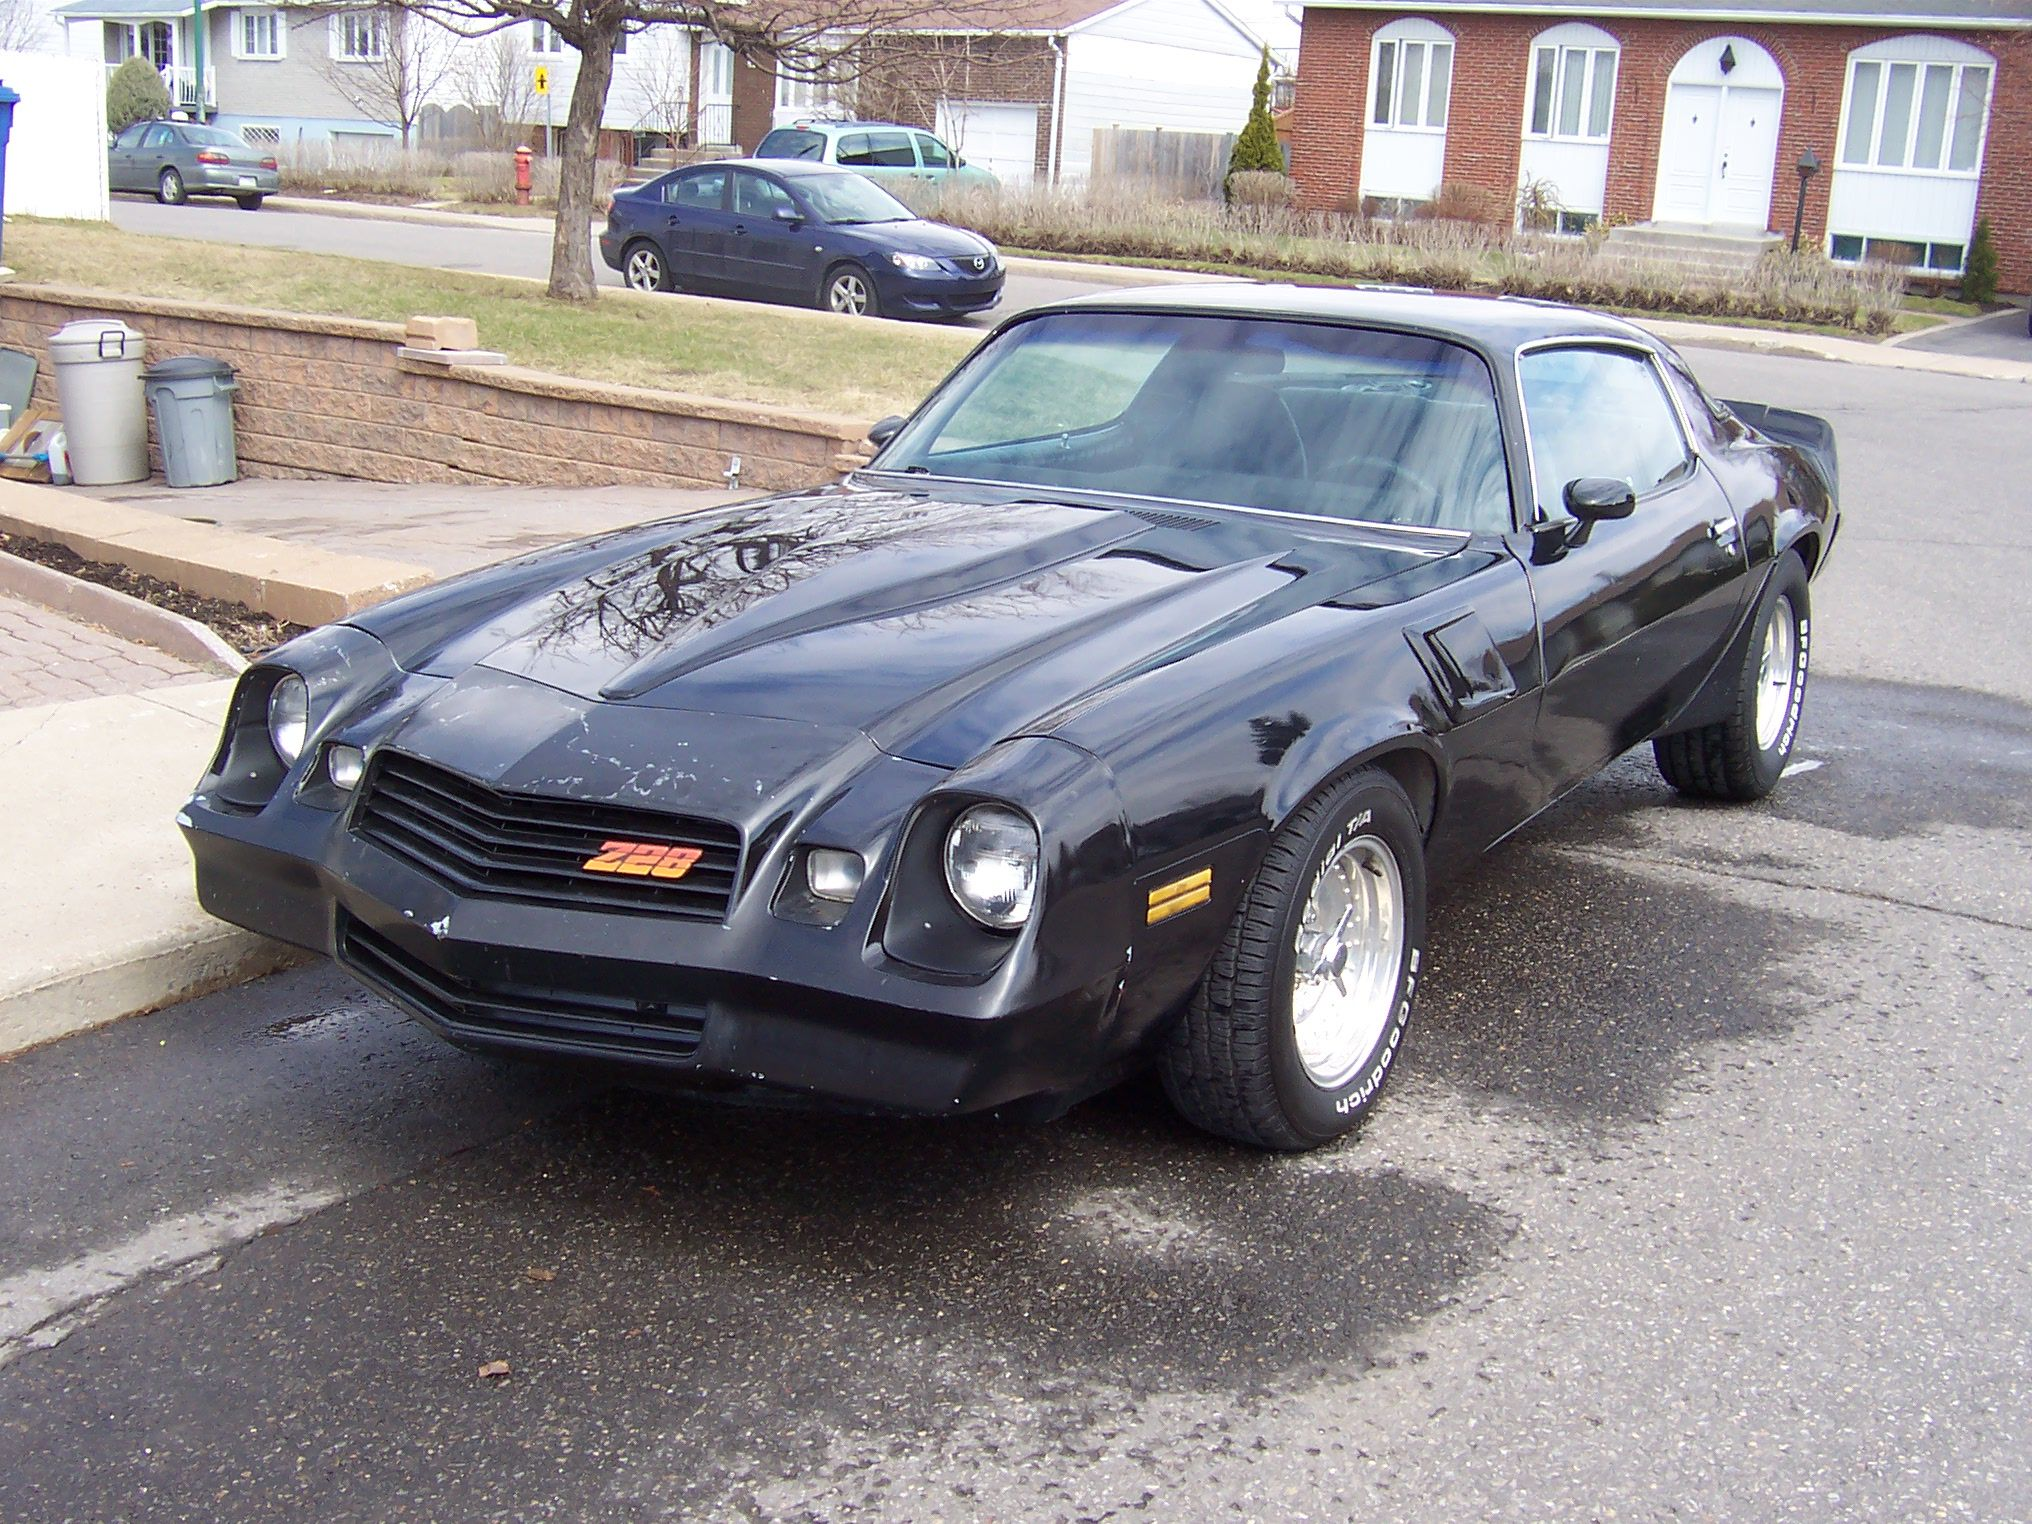 black 1980 chevrolet camaro not a 60s car [ 2032 x 1524 Pixel ]